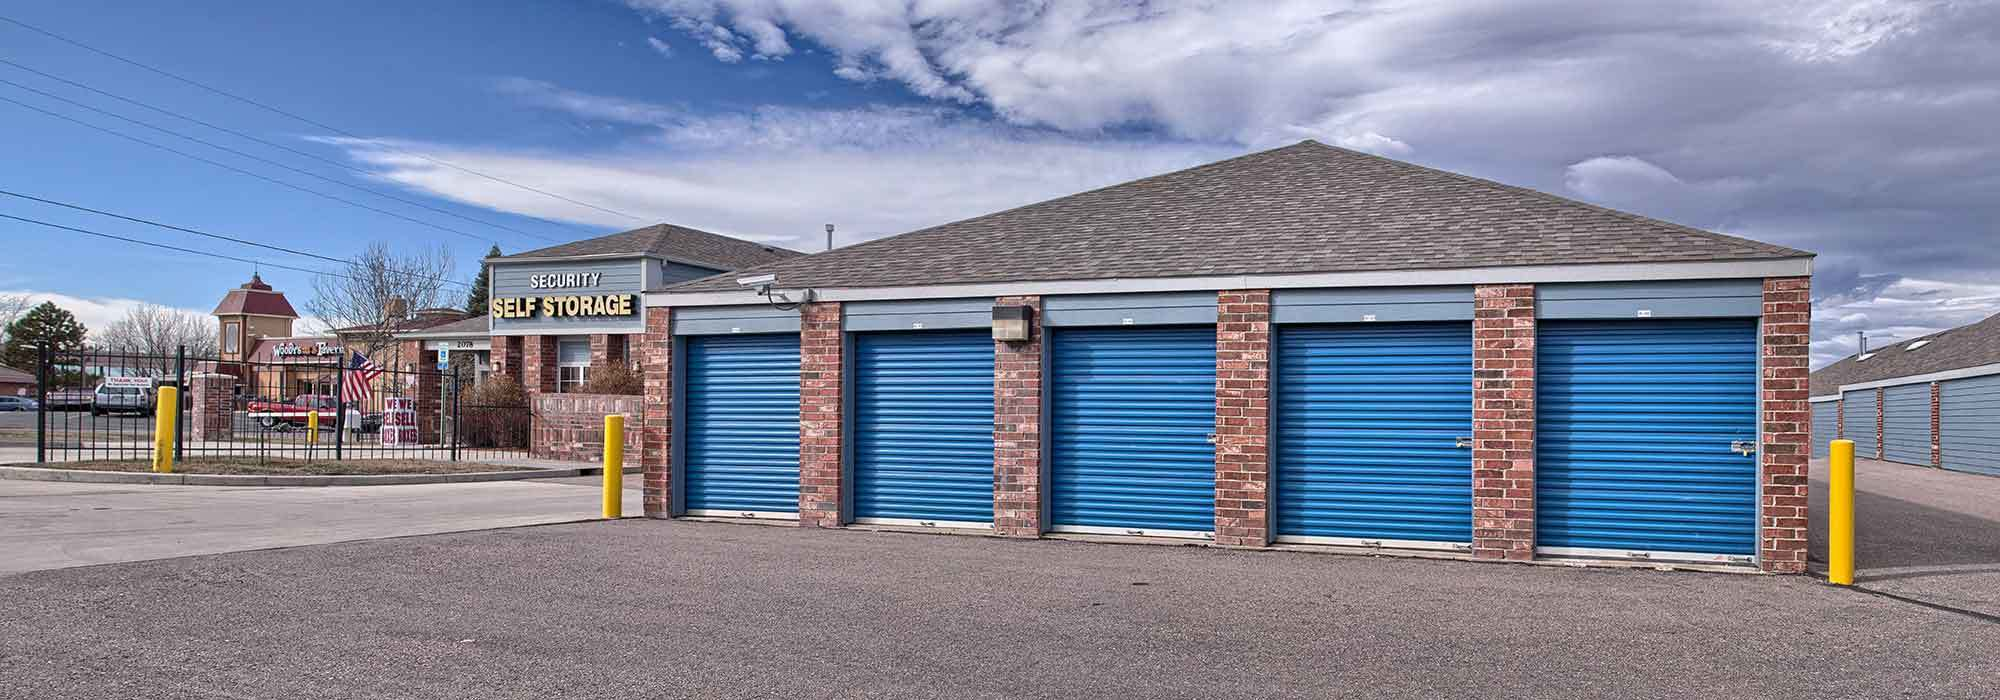 Self storage in Denver CO